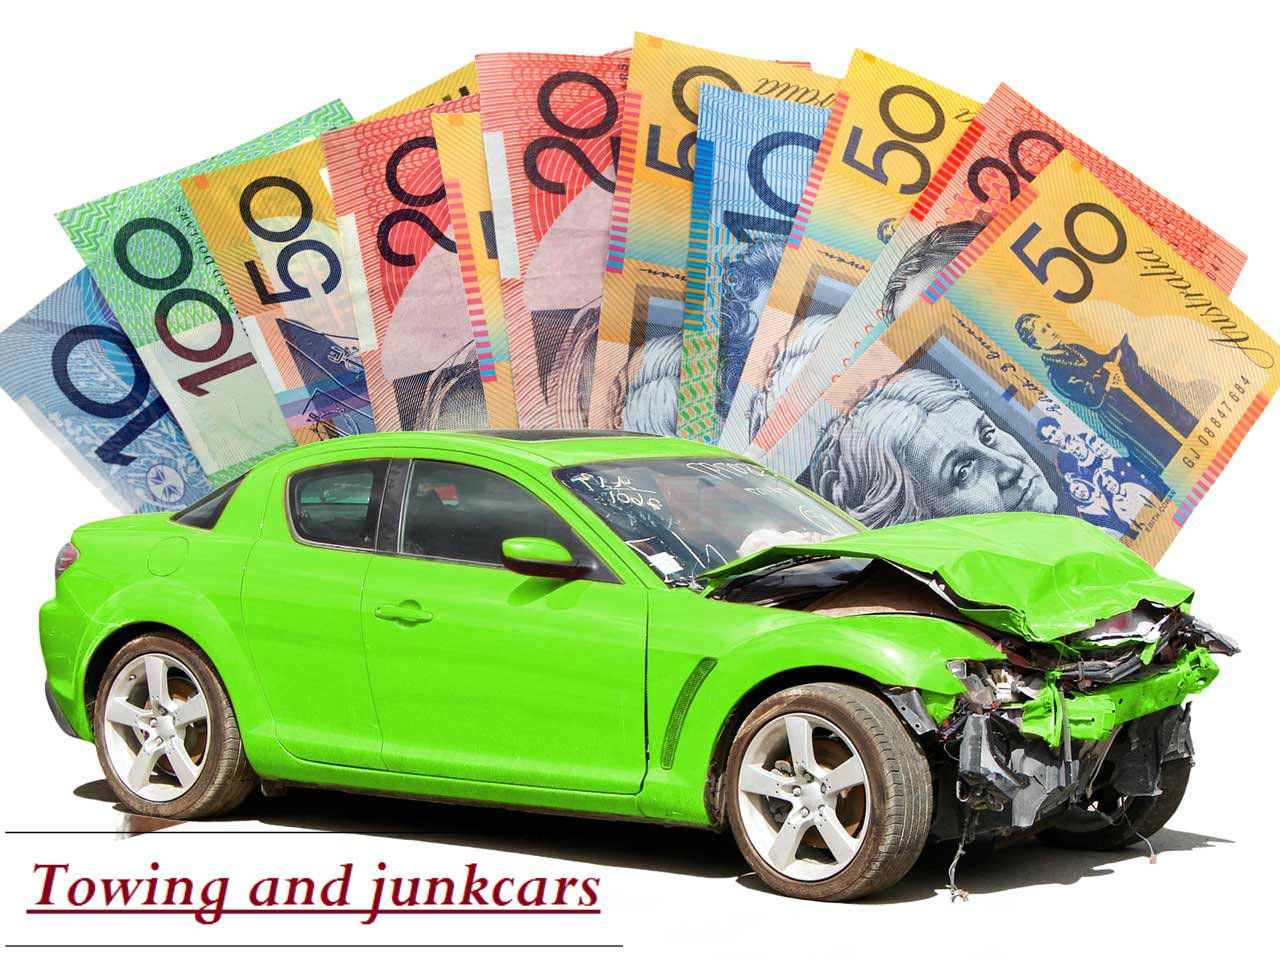 If you have a damaged or junk car then get cash for junk